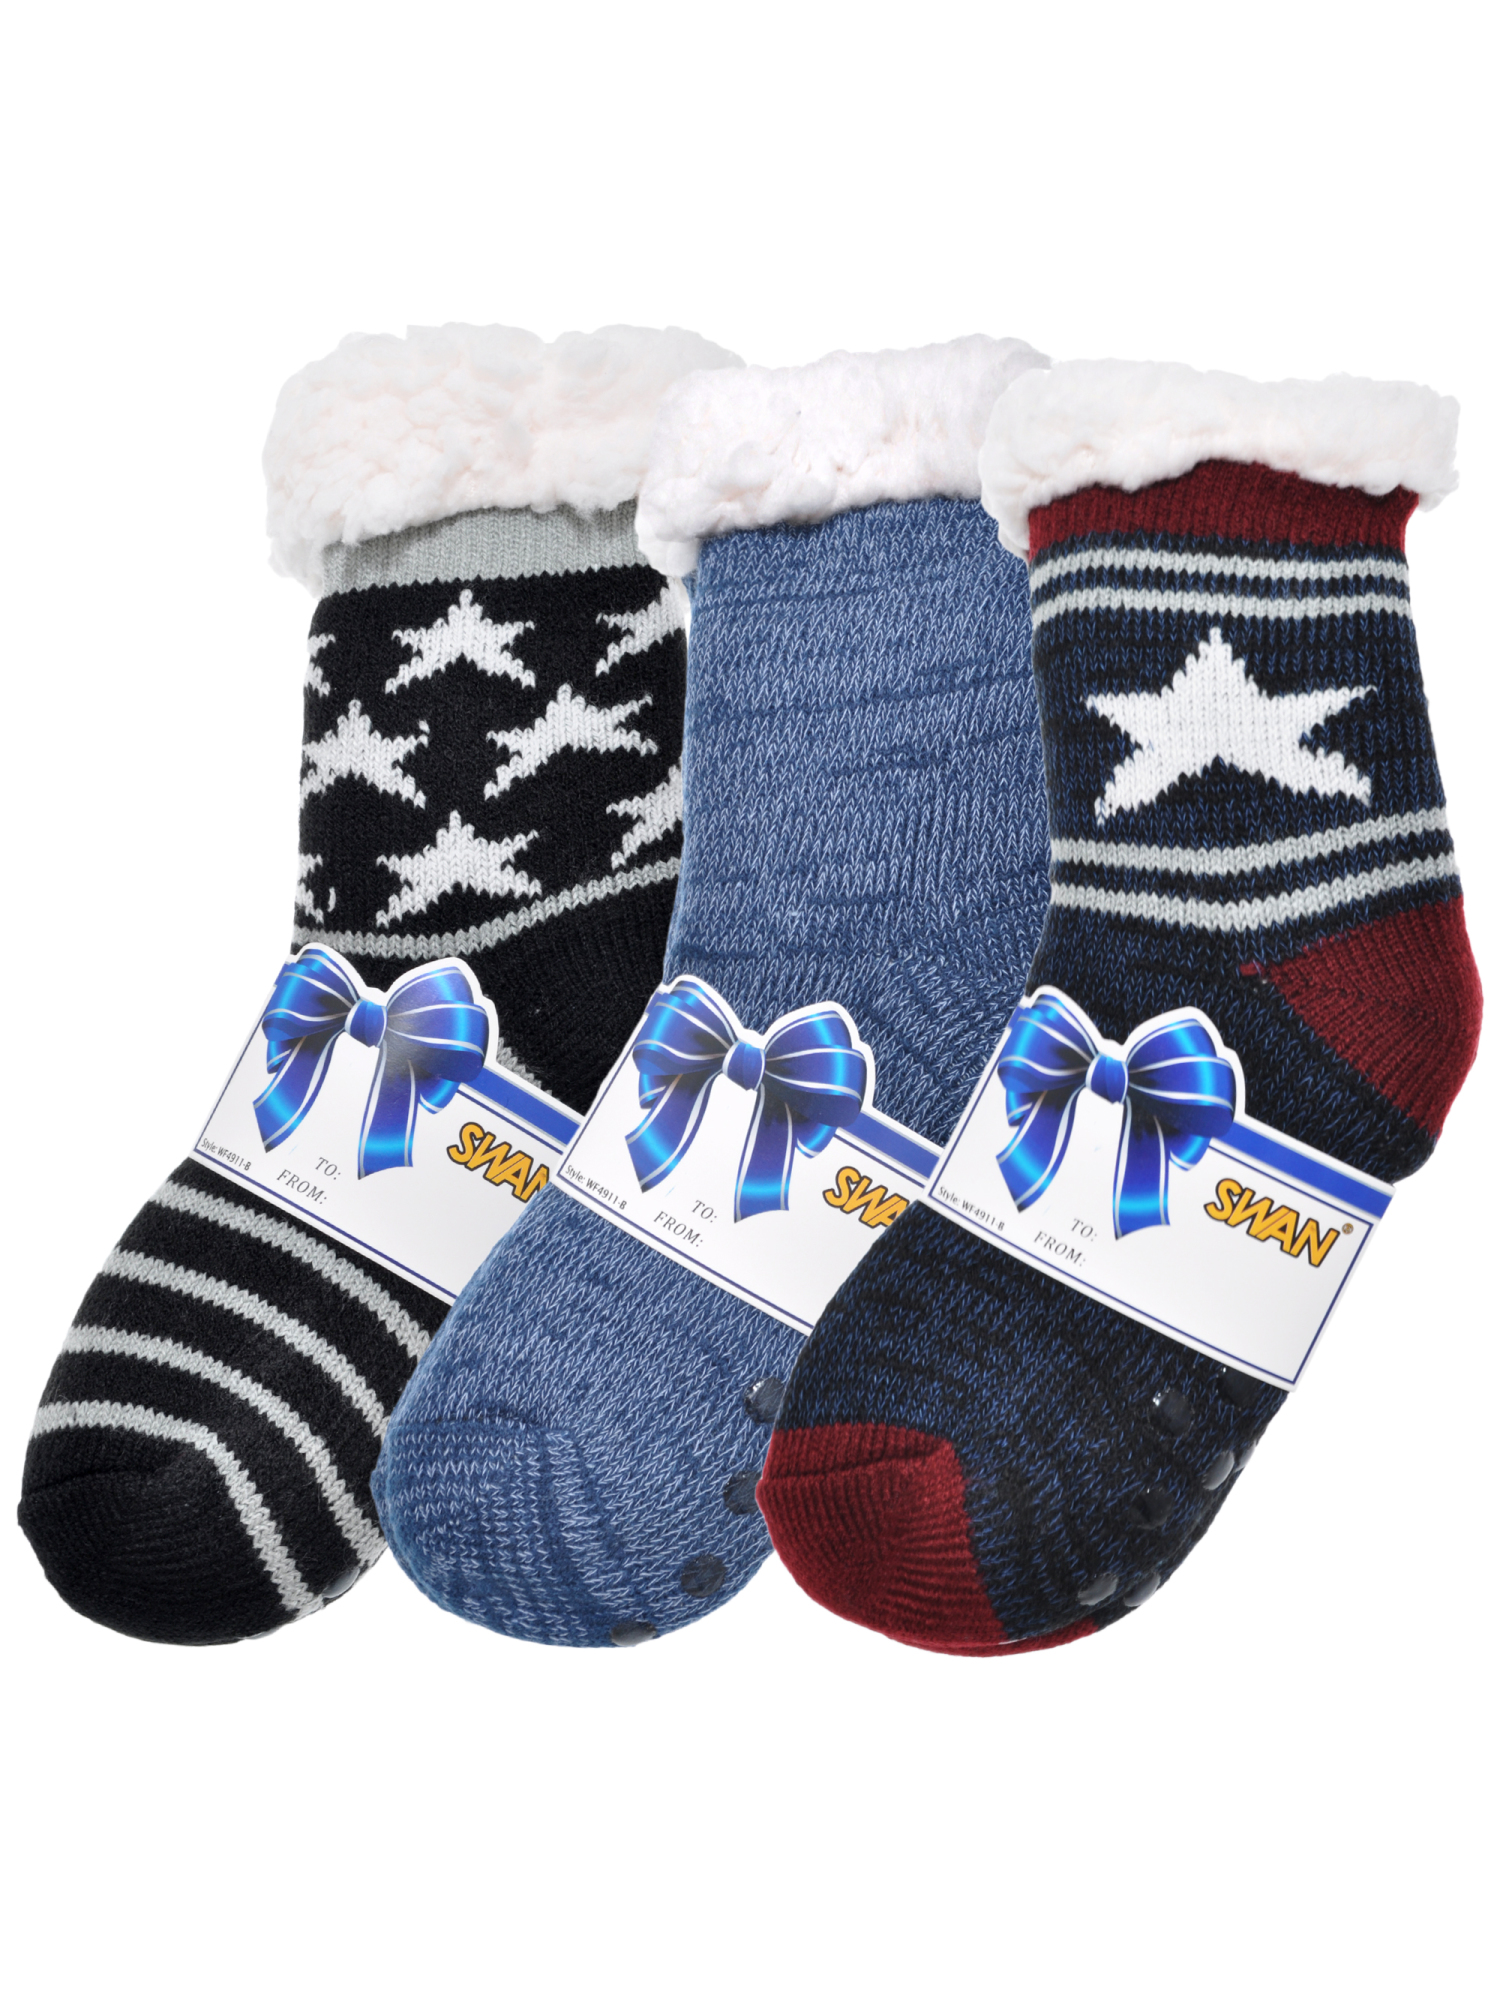 Angelina Kids Winter-Weight Sherpa-Lined Knitted Thermal Crew Socks (3-Pairs)